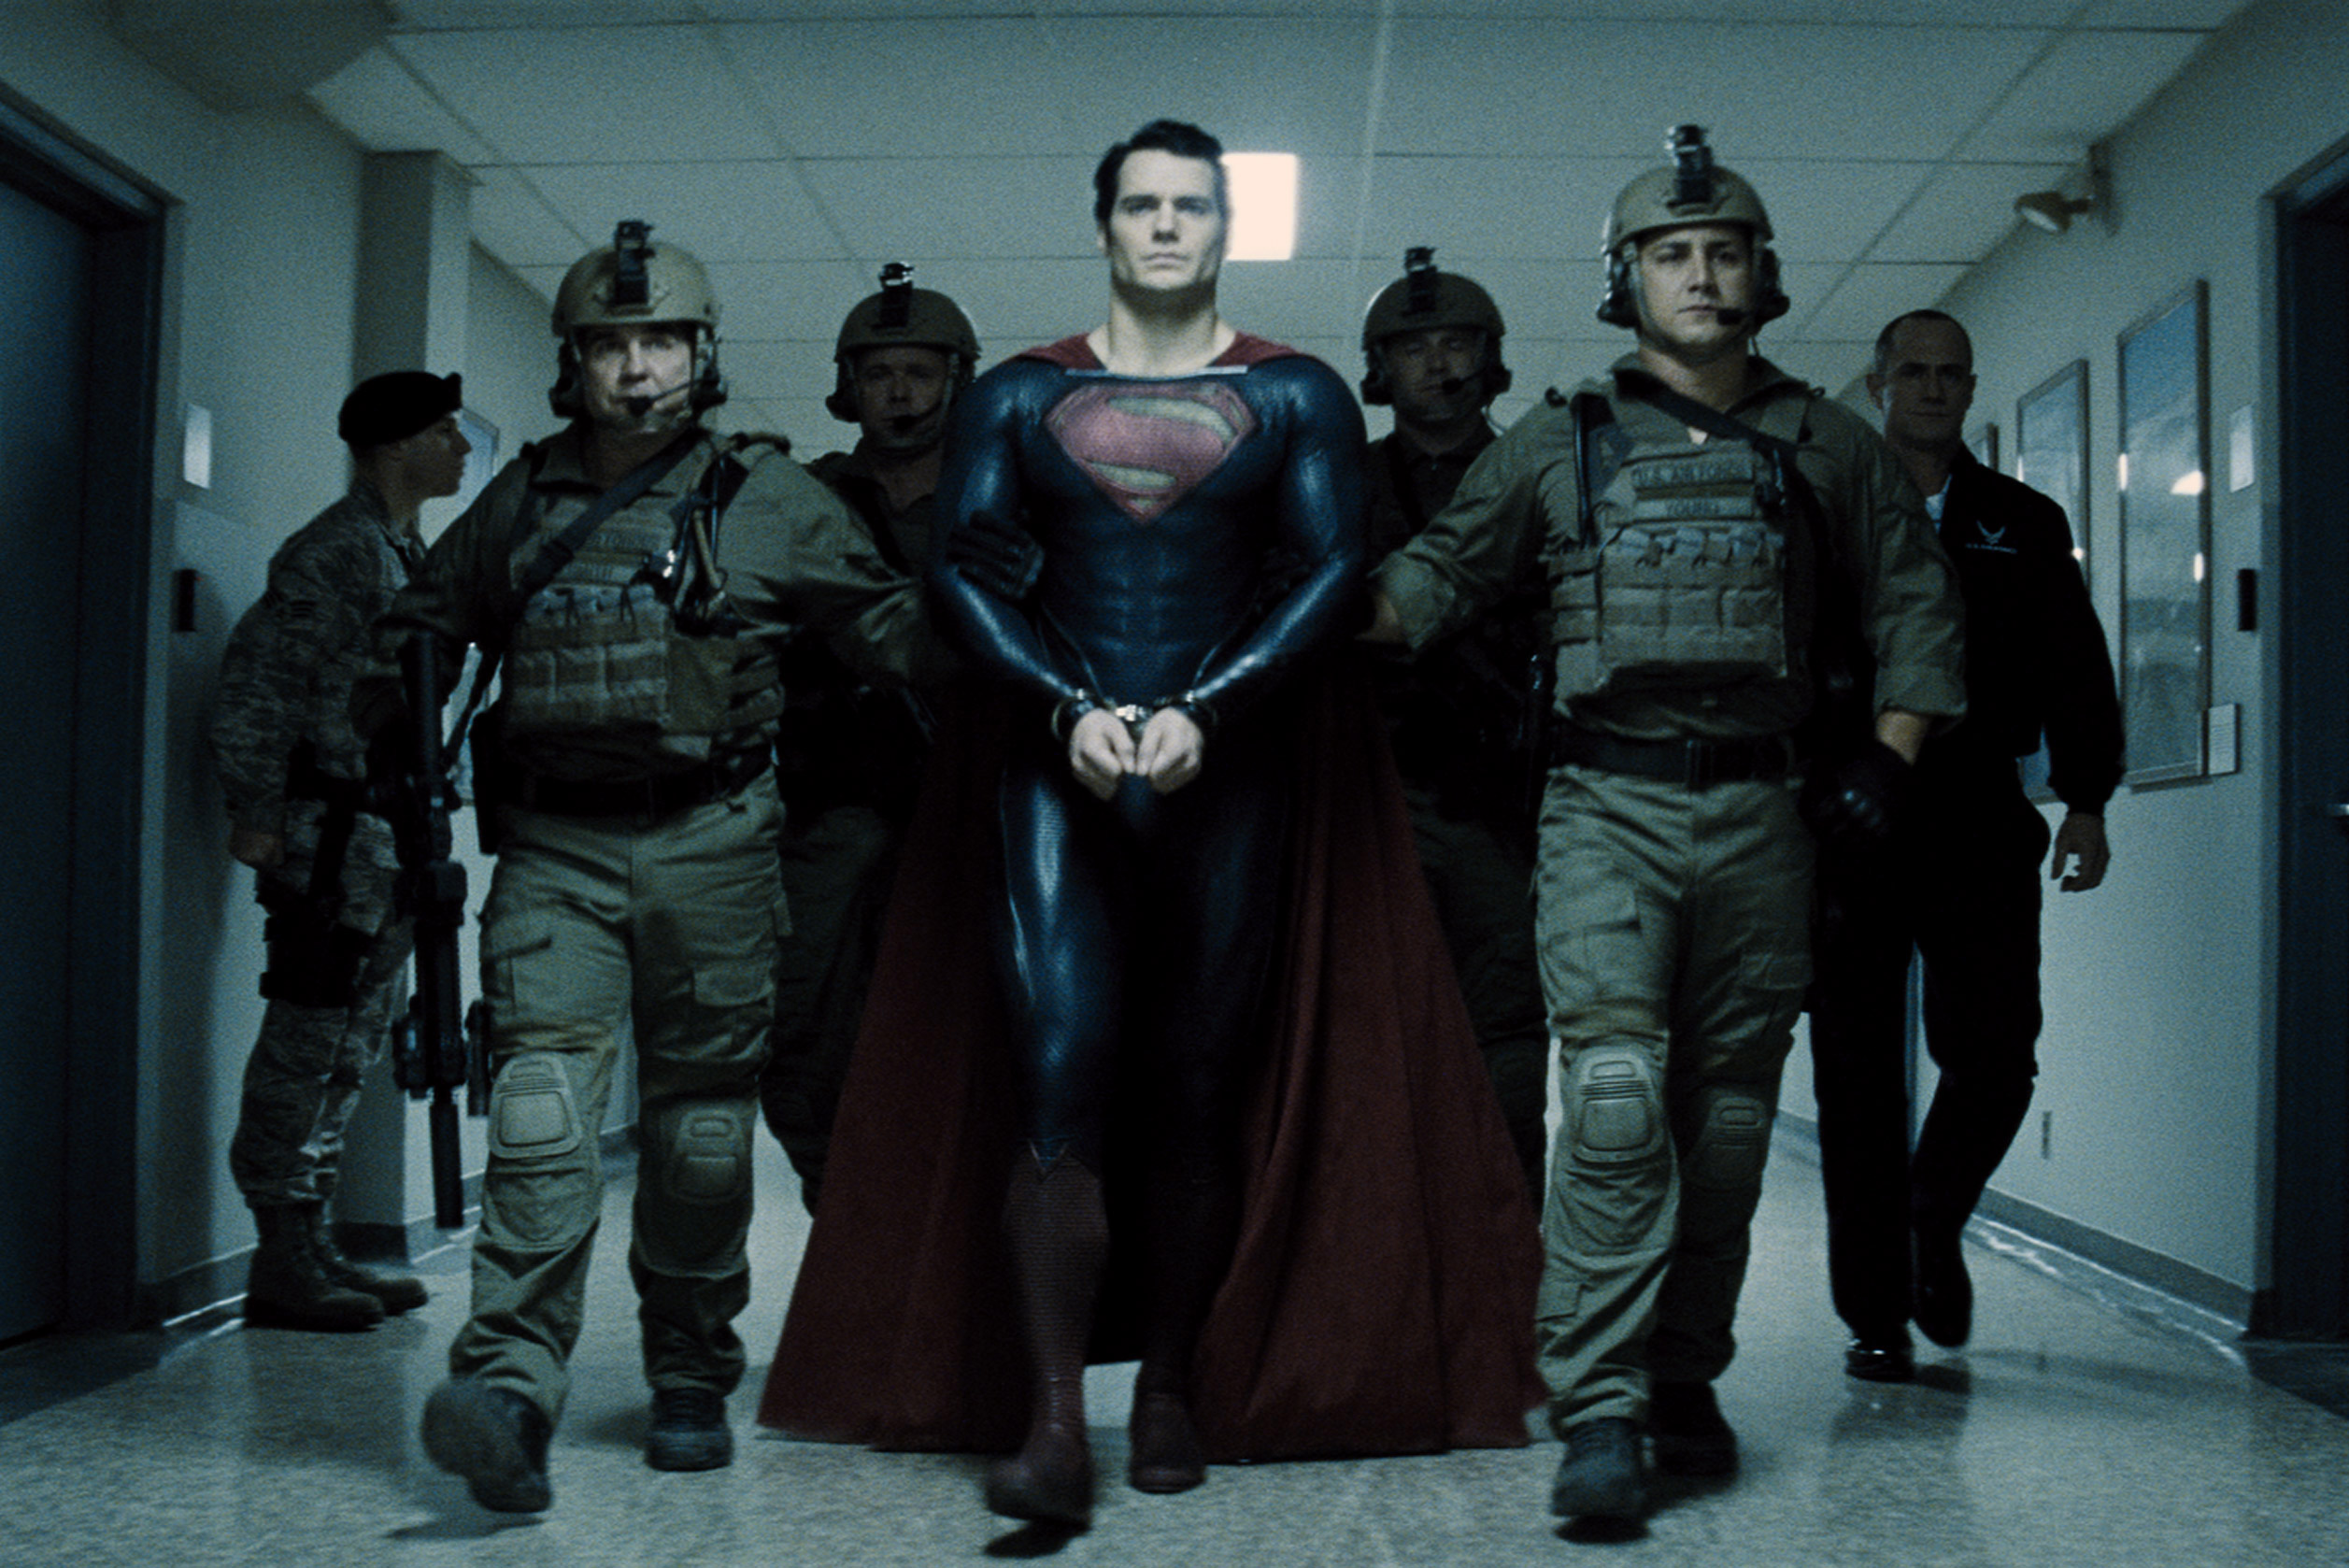 Superman-arrested-movie-scene-wallpaper1